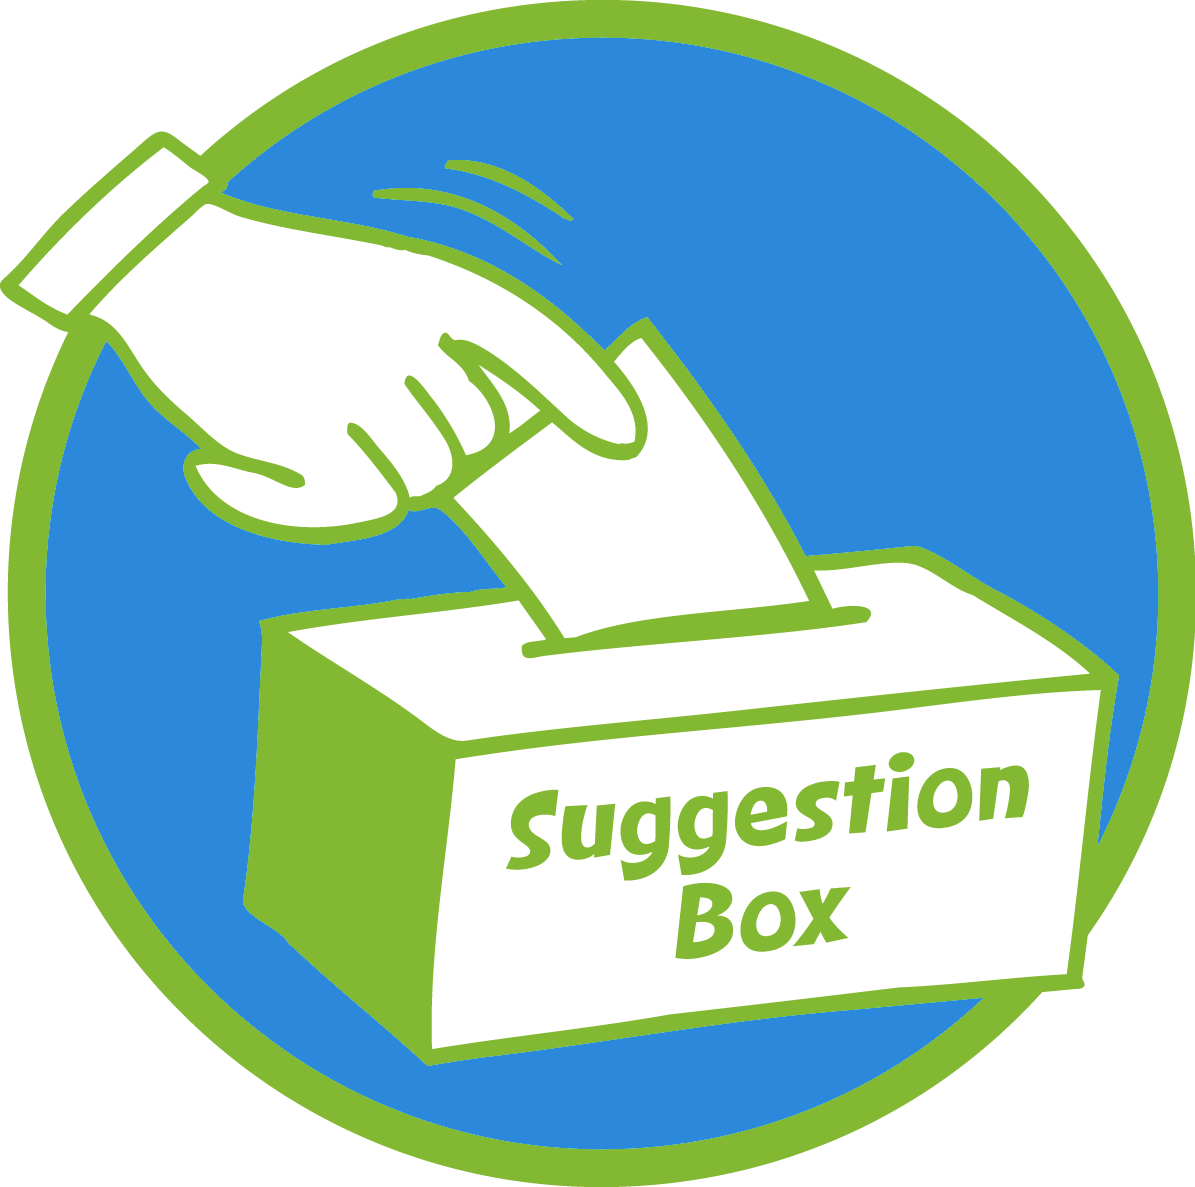 Idea clipart suggestion box. Lakeland tn official website